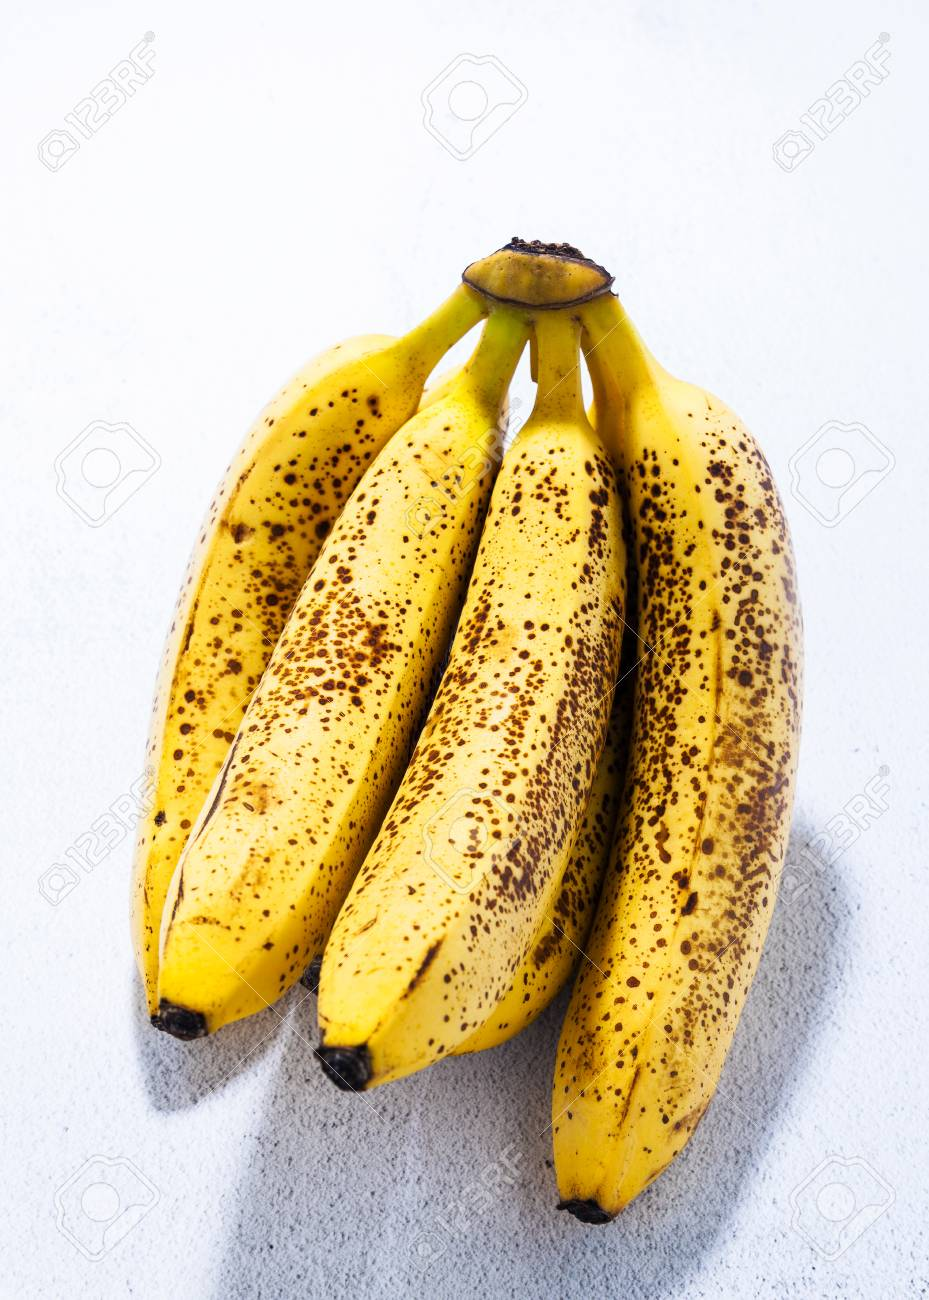 Banana On Table branch of overripe bananas with black dots on the table. natural sweetener.  concept of